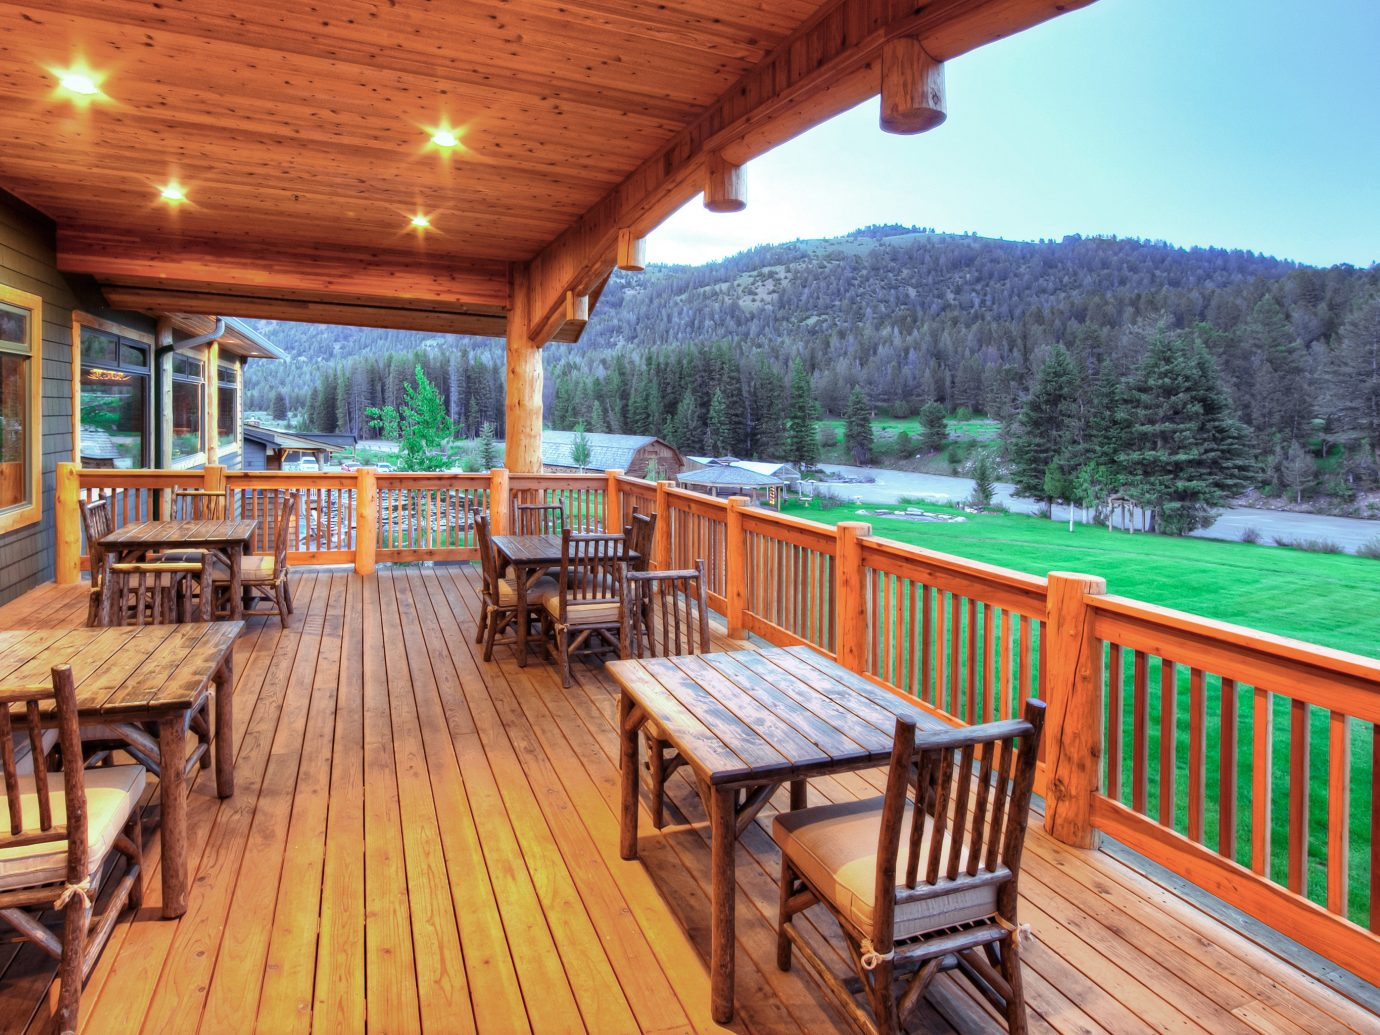 Country Deck Glamping Hotels Lodge Montana Outdoors + Adventure Patio Ranch Rustic Scenic views Trip Ideas wooden chair outdoor building property estate Resort cottage real estate outdoor structure Villa porch log cabin eco hotel wood area furniture